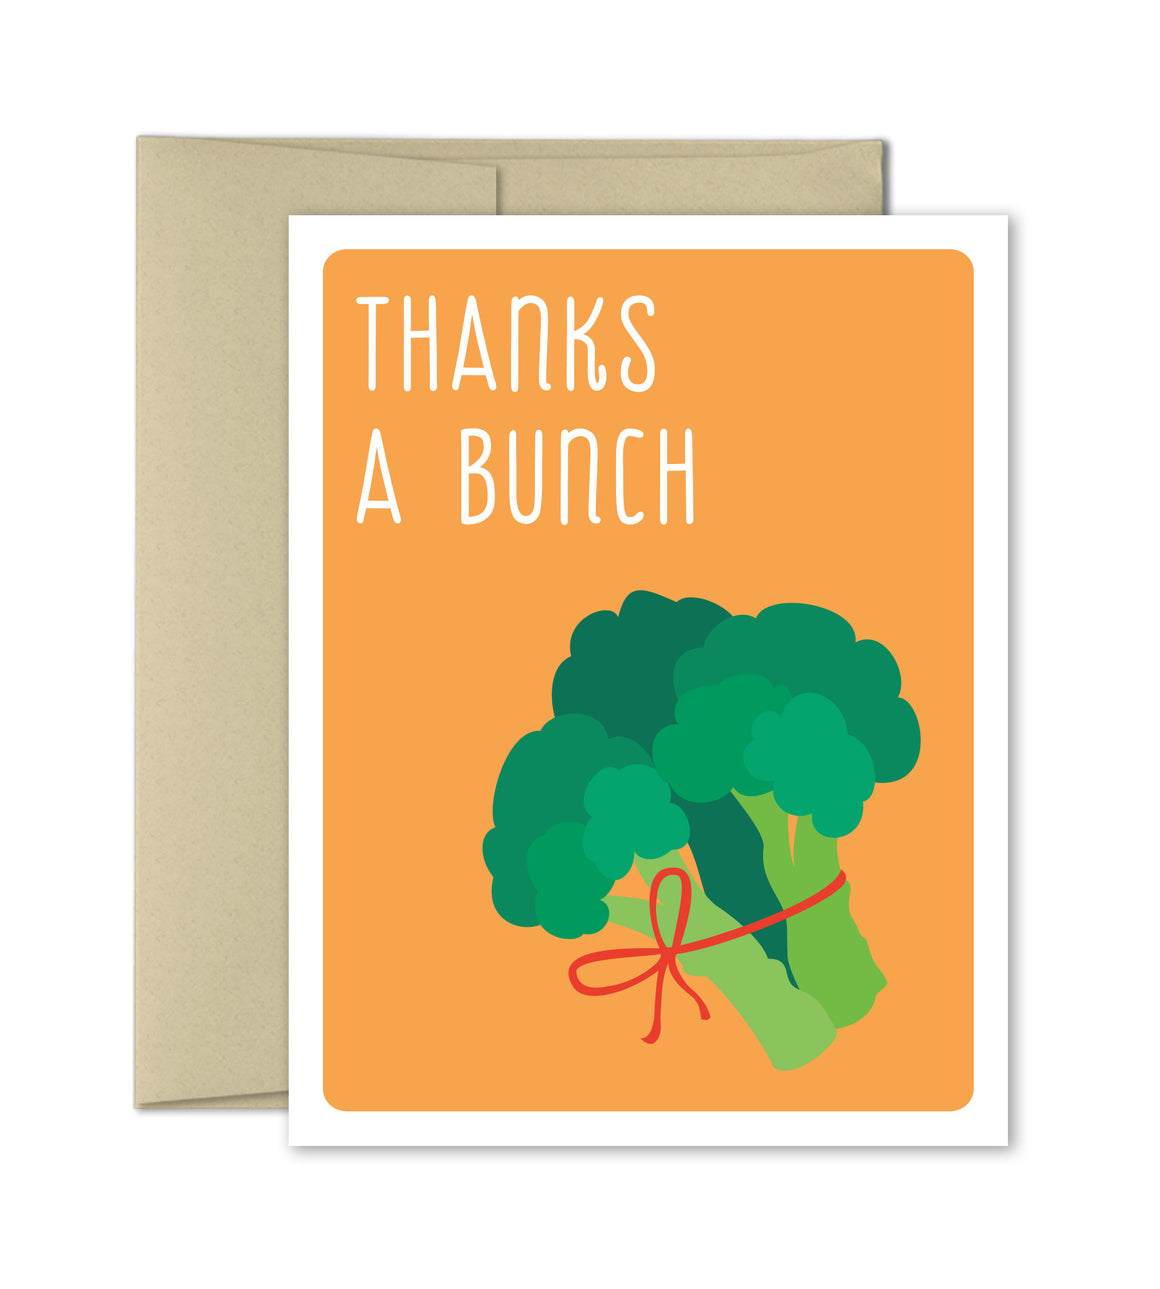 Thank You Card - Thanks a bunch - The Imagination Spot